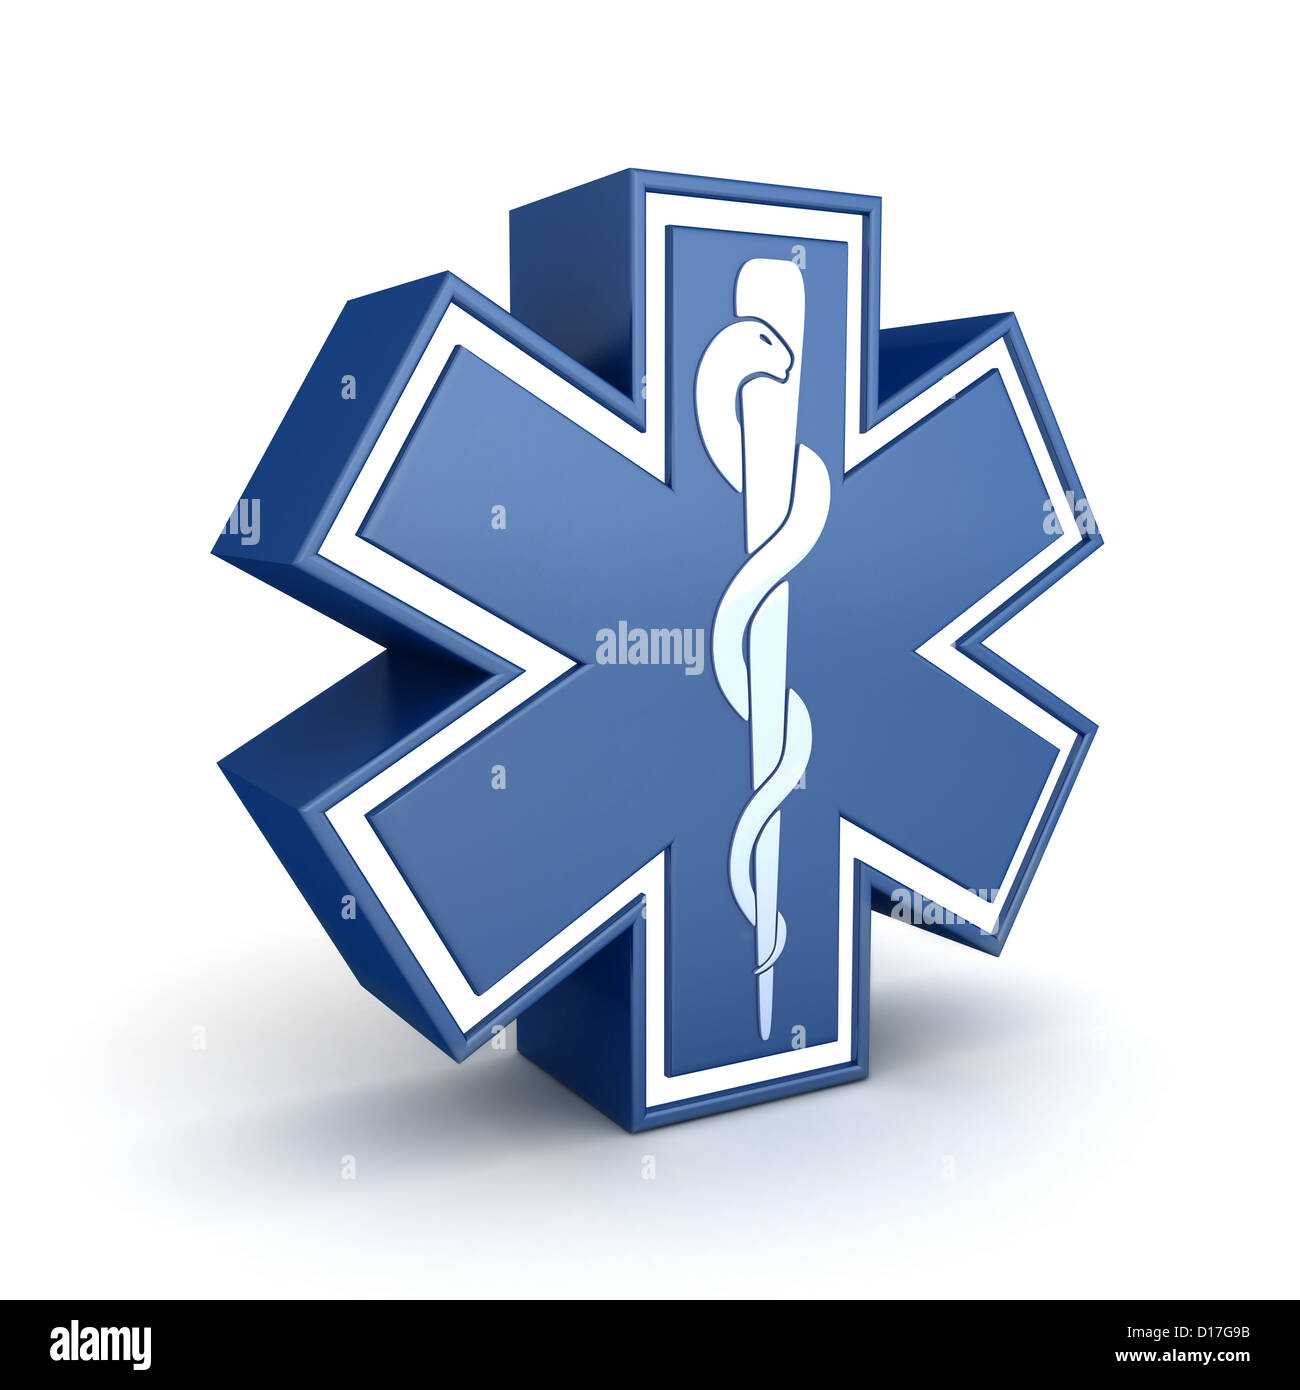 Symbol Star Of Life Done In 3d Stock Photo 52412231 Alamy